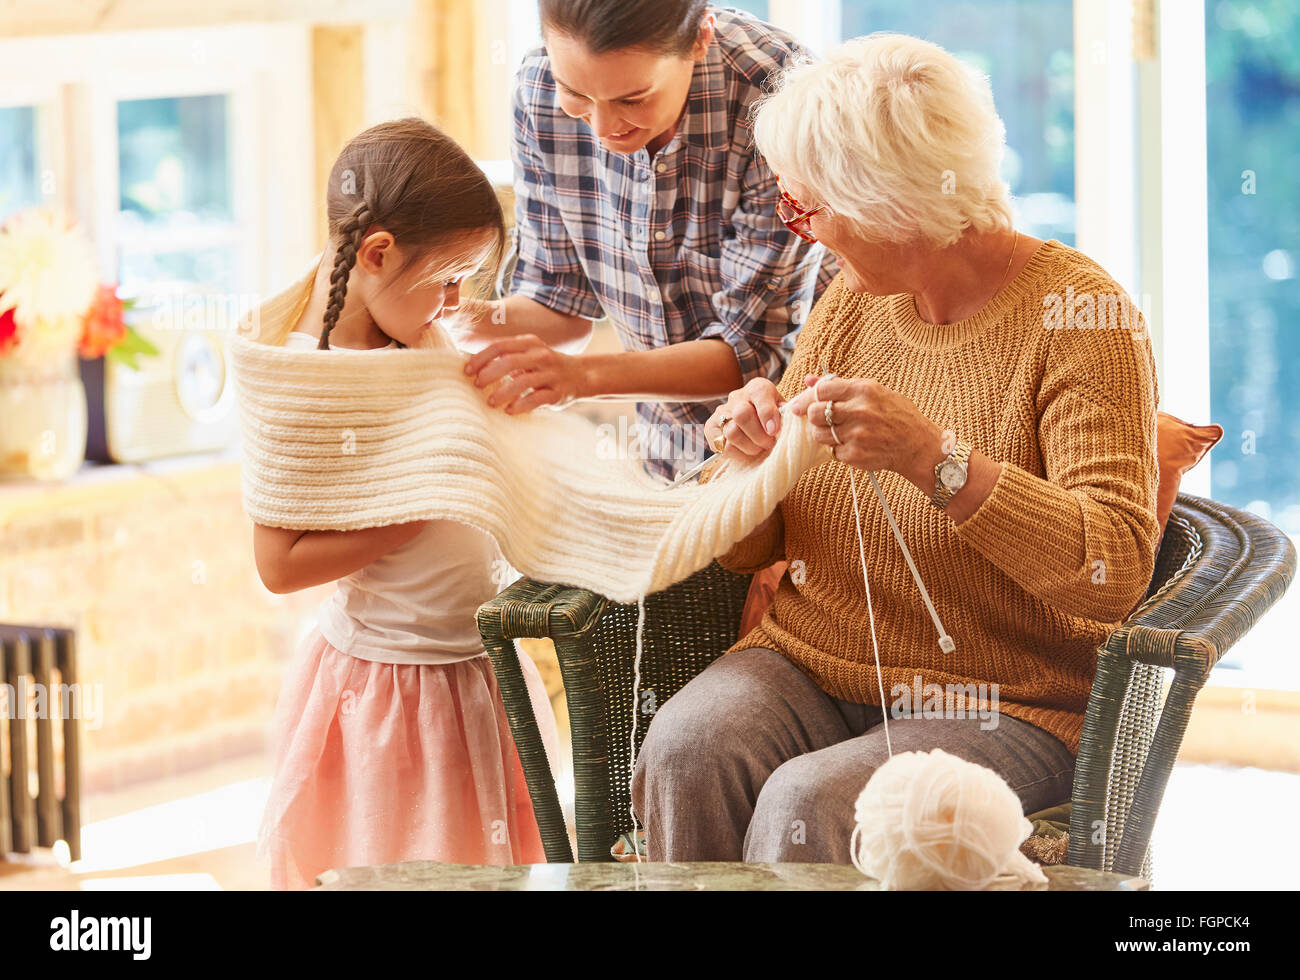 Grandmother knitting scarf around granddaughter - Stock Image